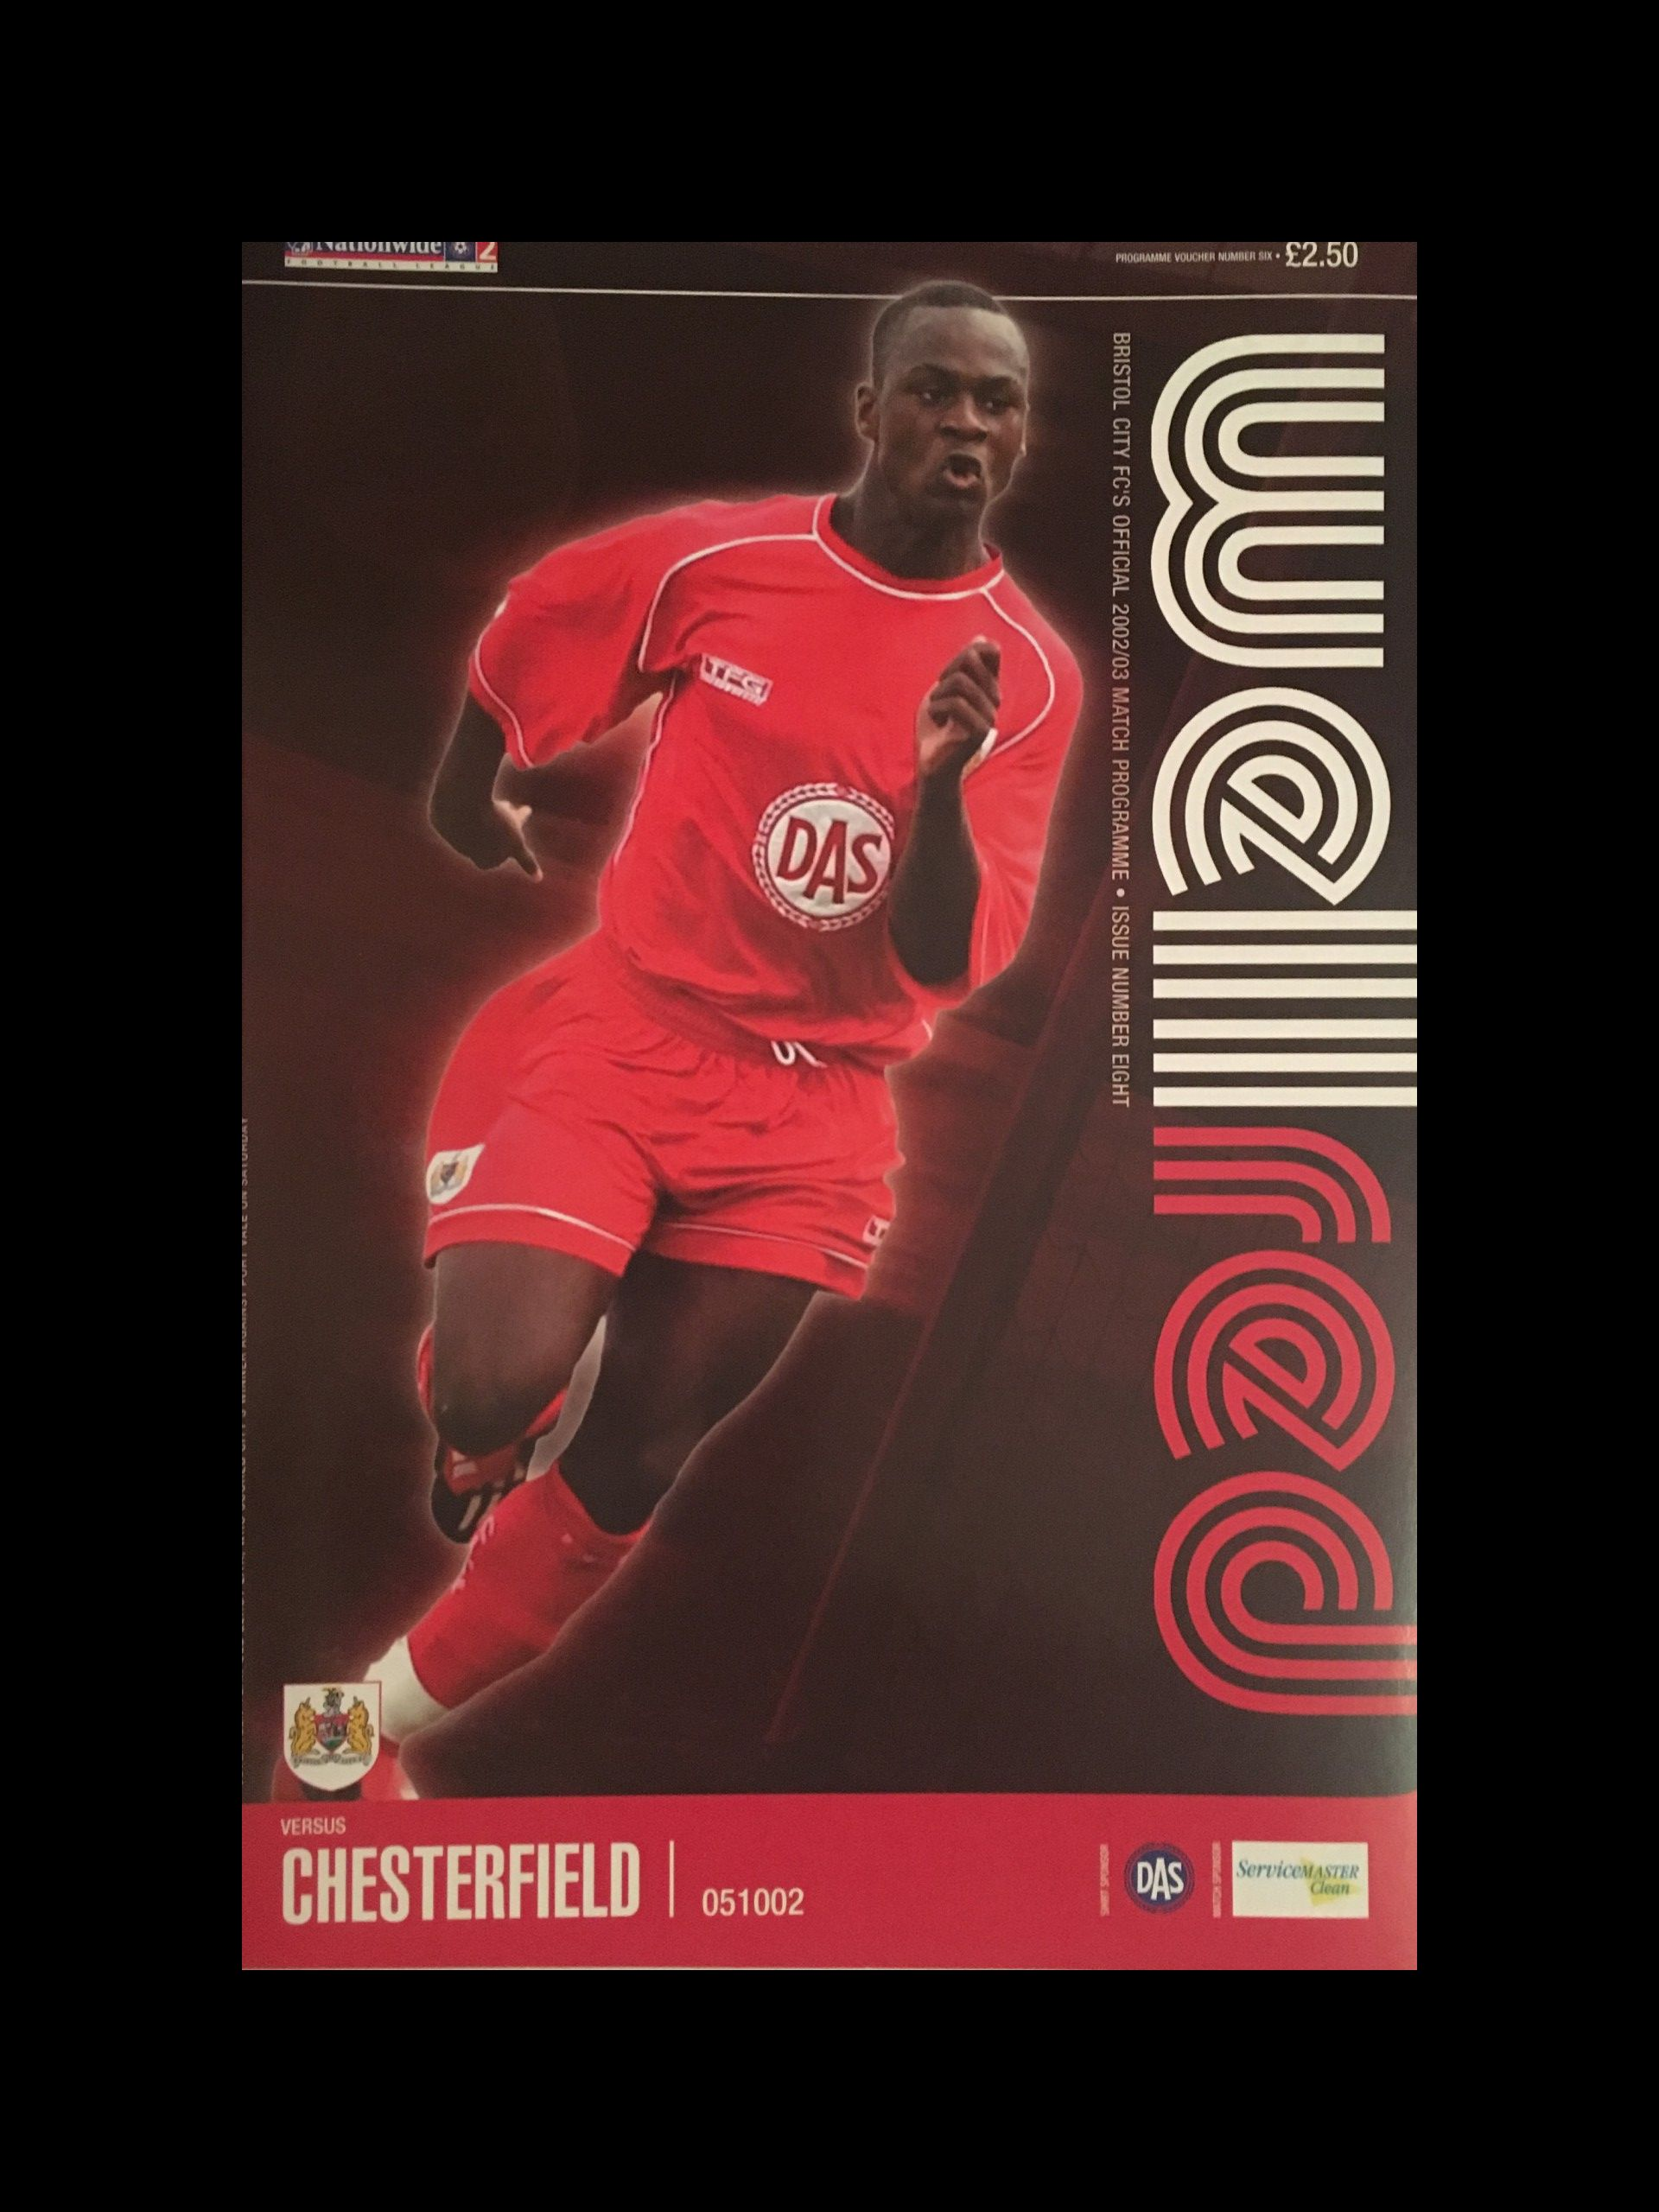 Bristol City v Chesterfield 05-10-2002 Programme